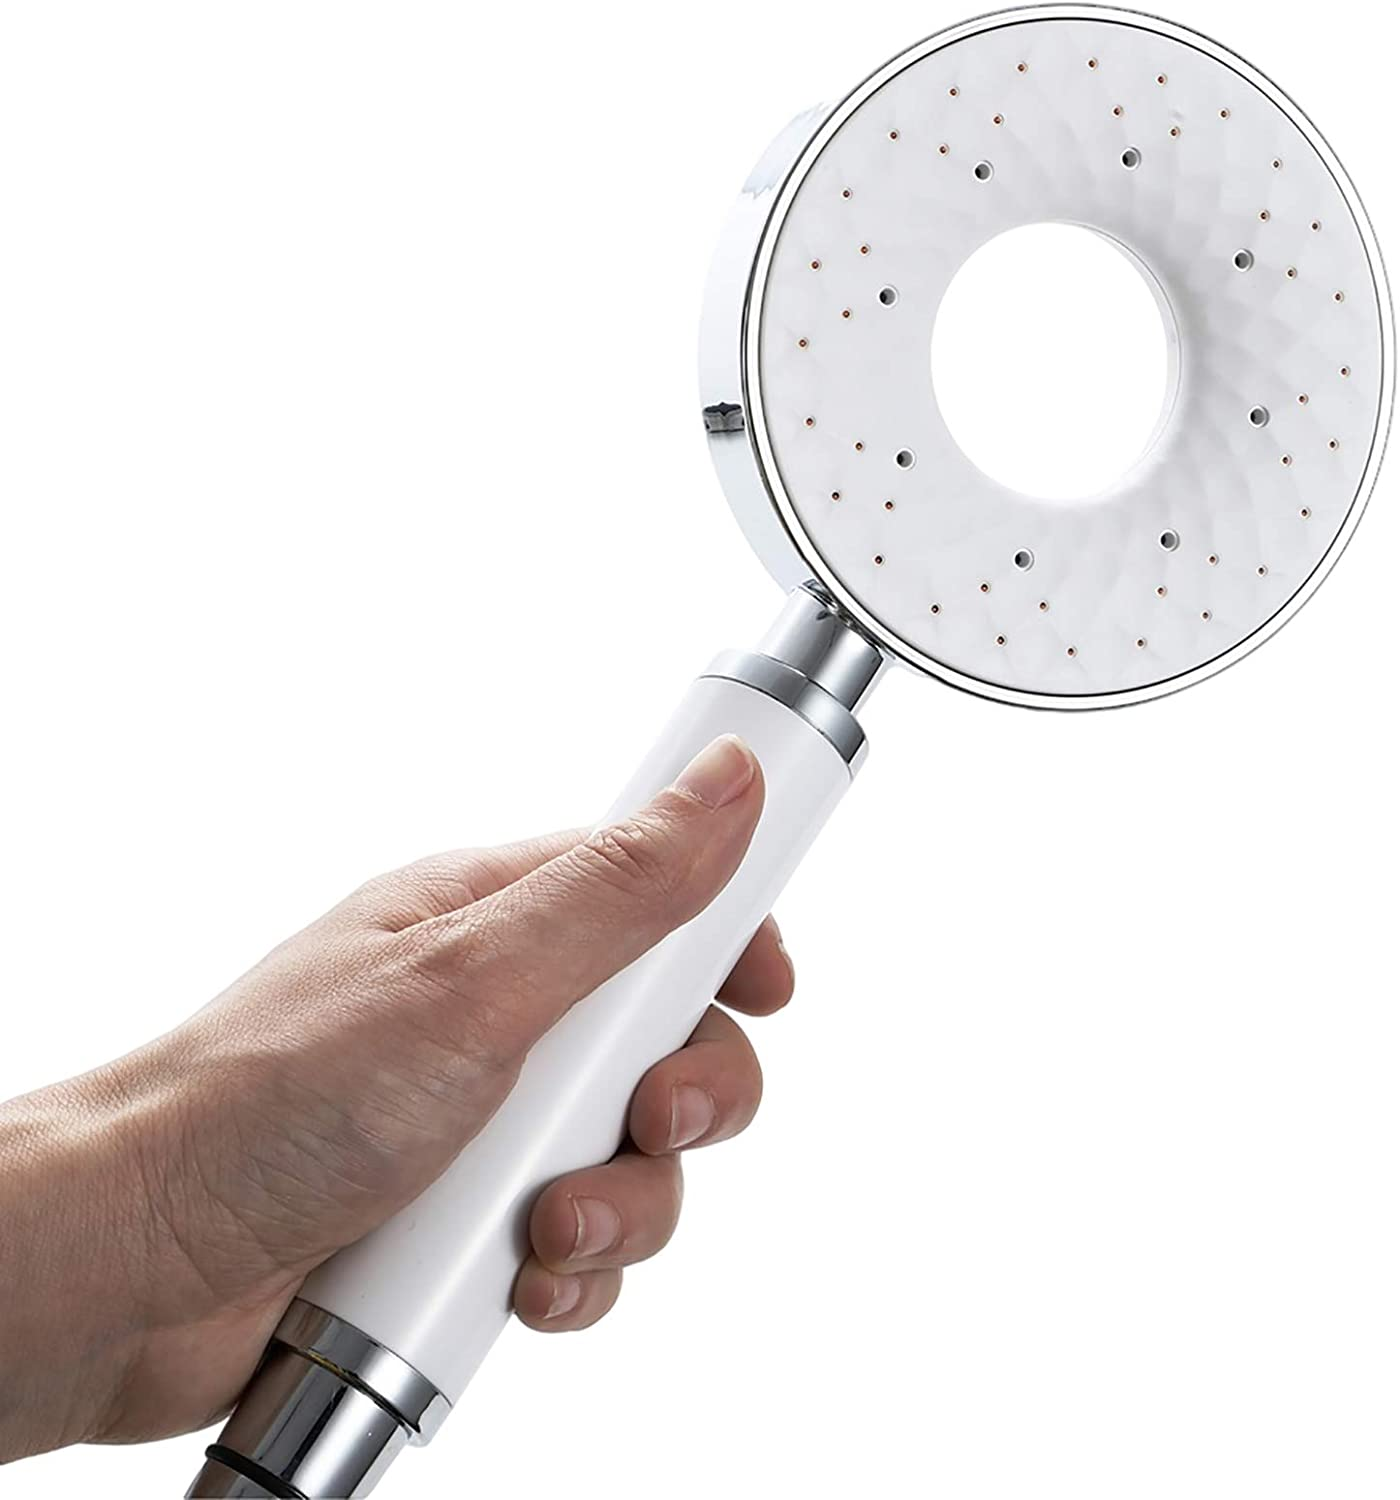 HSART High Pressure Shower Head Held Hand Anti-Clog Handheld Sh Popular shop is the lowest price challenge Max 85% OFF